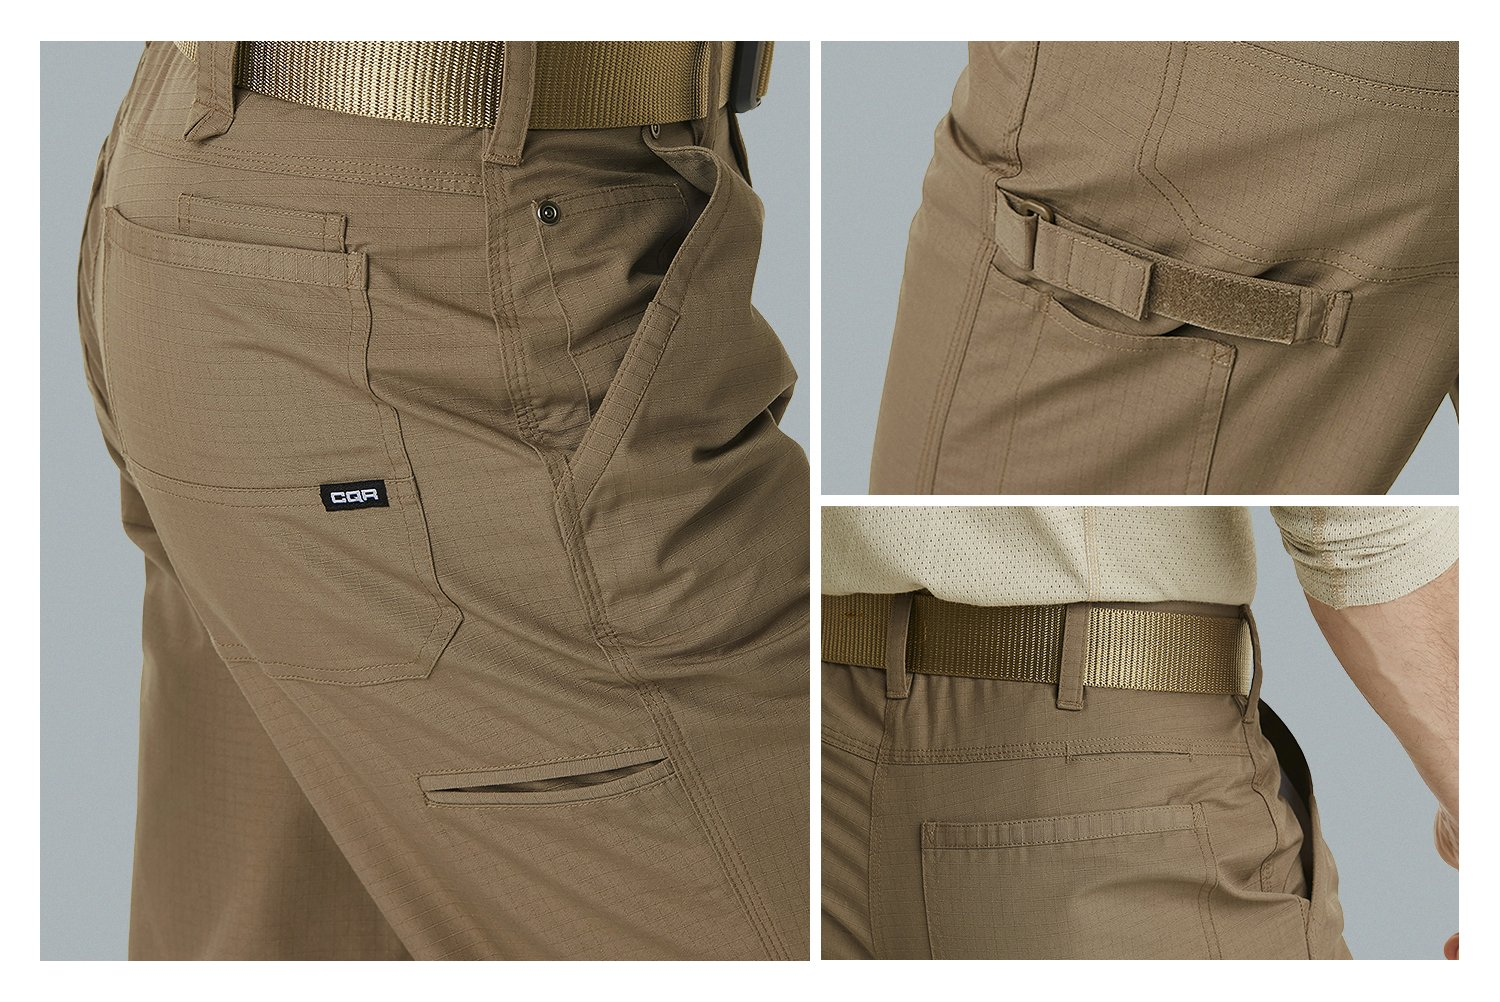 CQR CQ-TWP301-BLK_38W/30L Men's Operator Rip-Stop Tactical Work Utility Pants EDC TWP301 by CQR (Image #7)